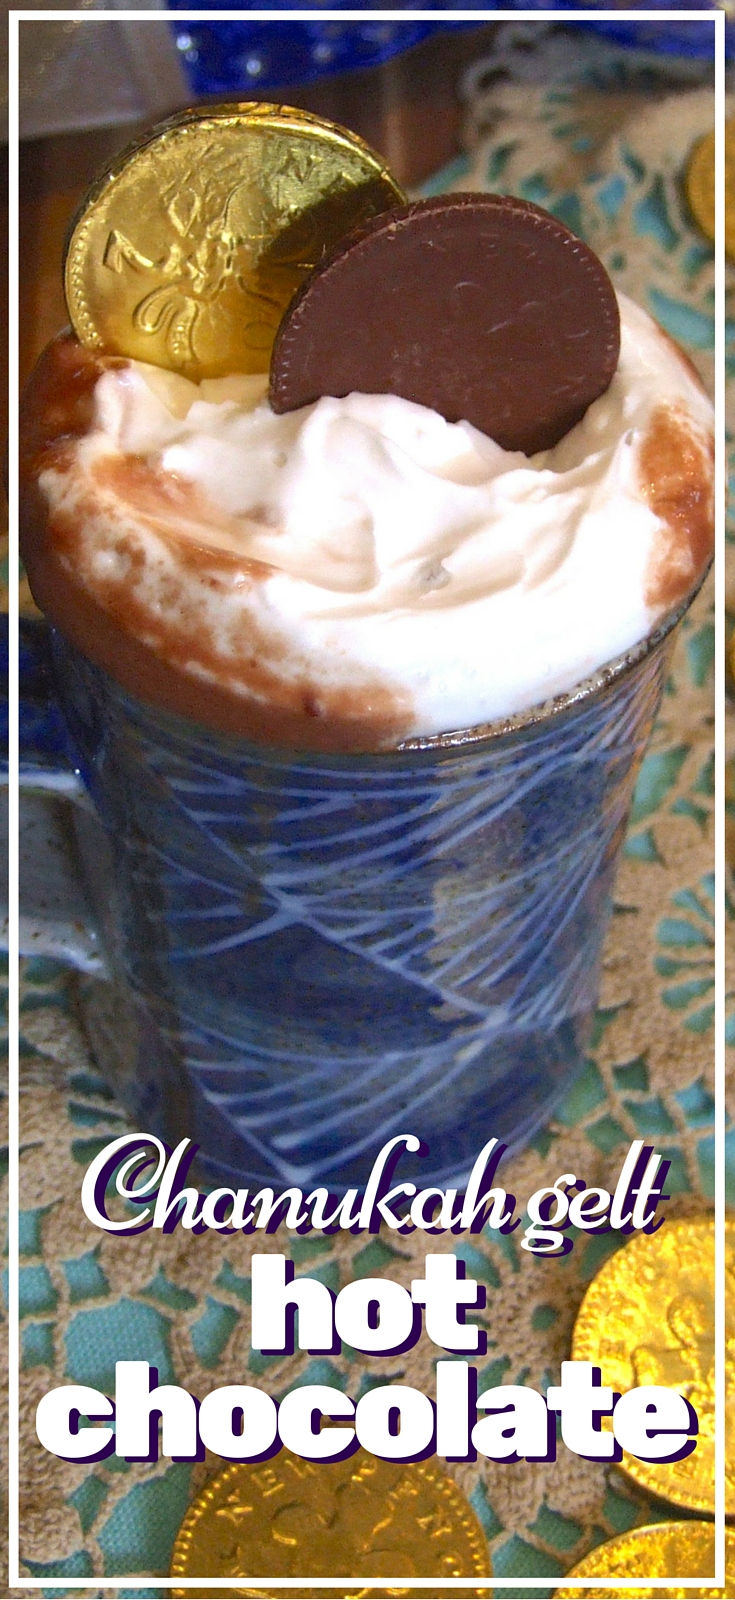 Gelt Hot Chocolate: Hanukkah Treats: Whip up one of these traditional treats to celebrate Hanukkah.